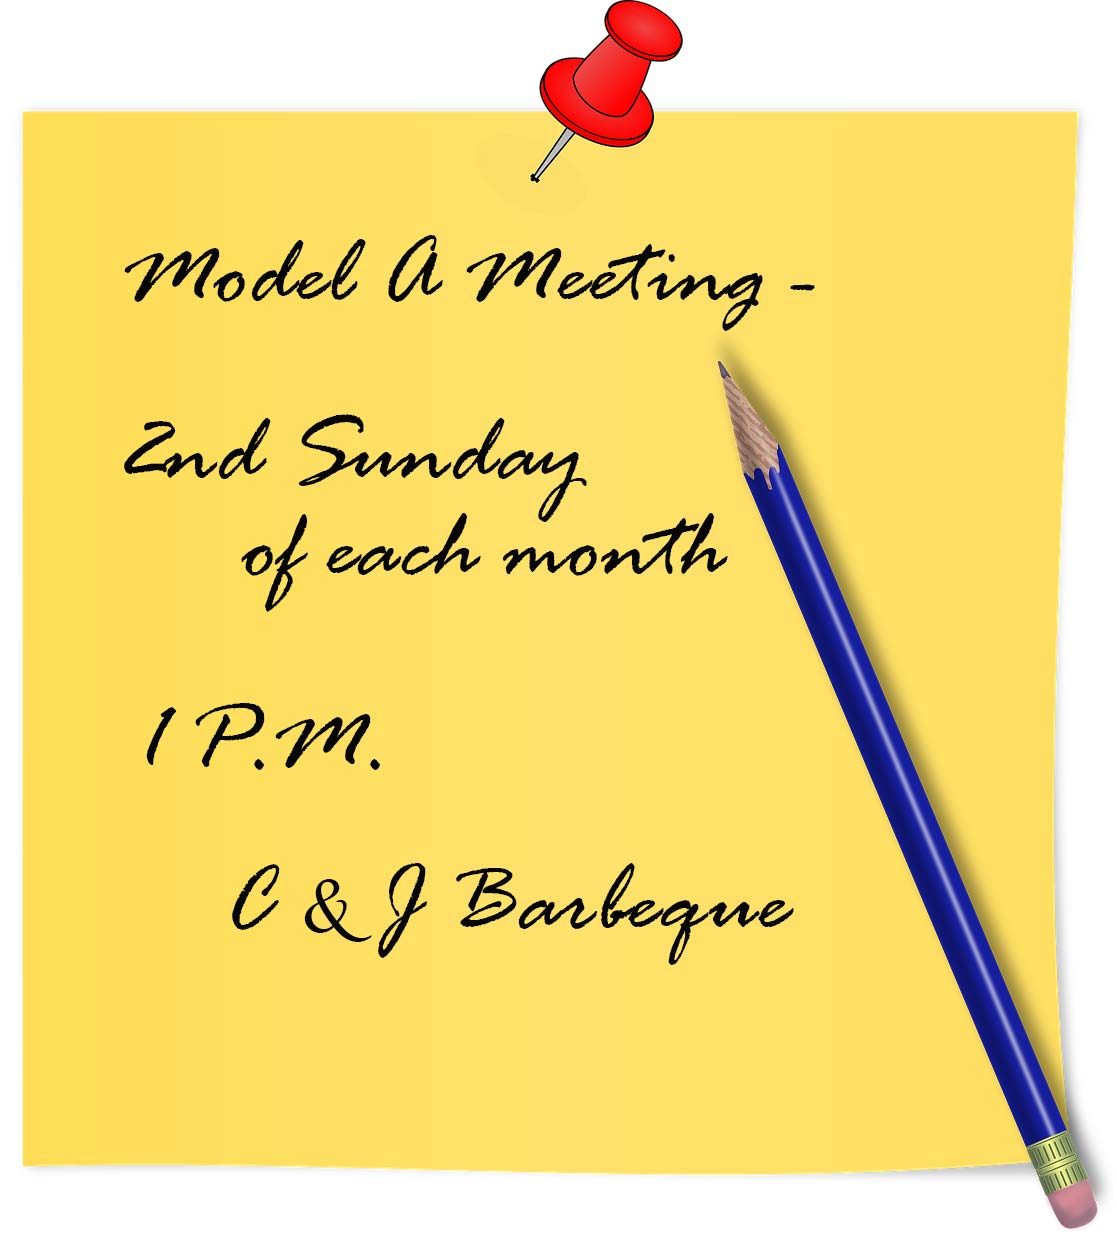 Ford Model A meeting reminder